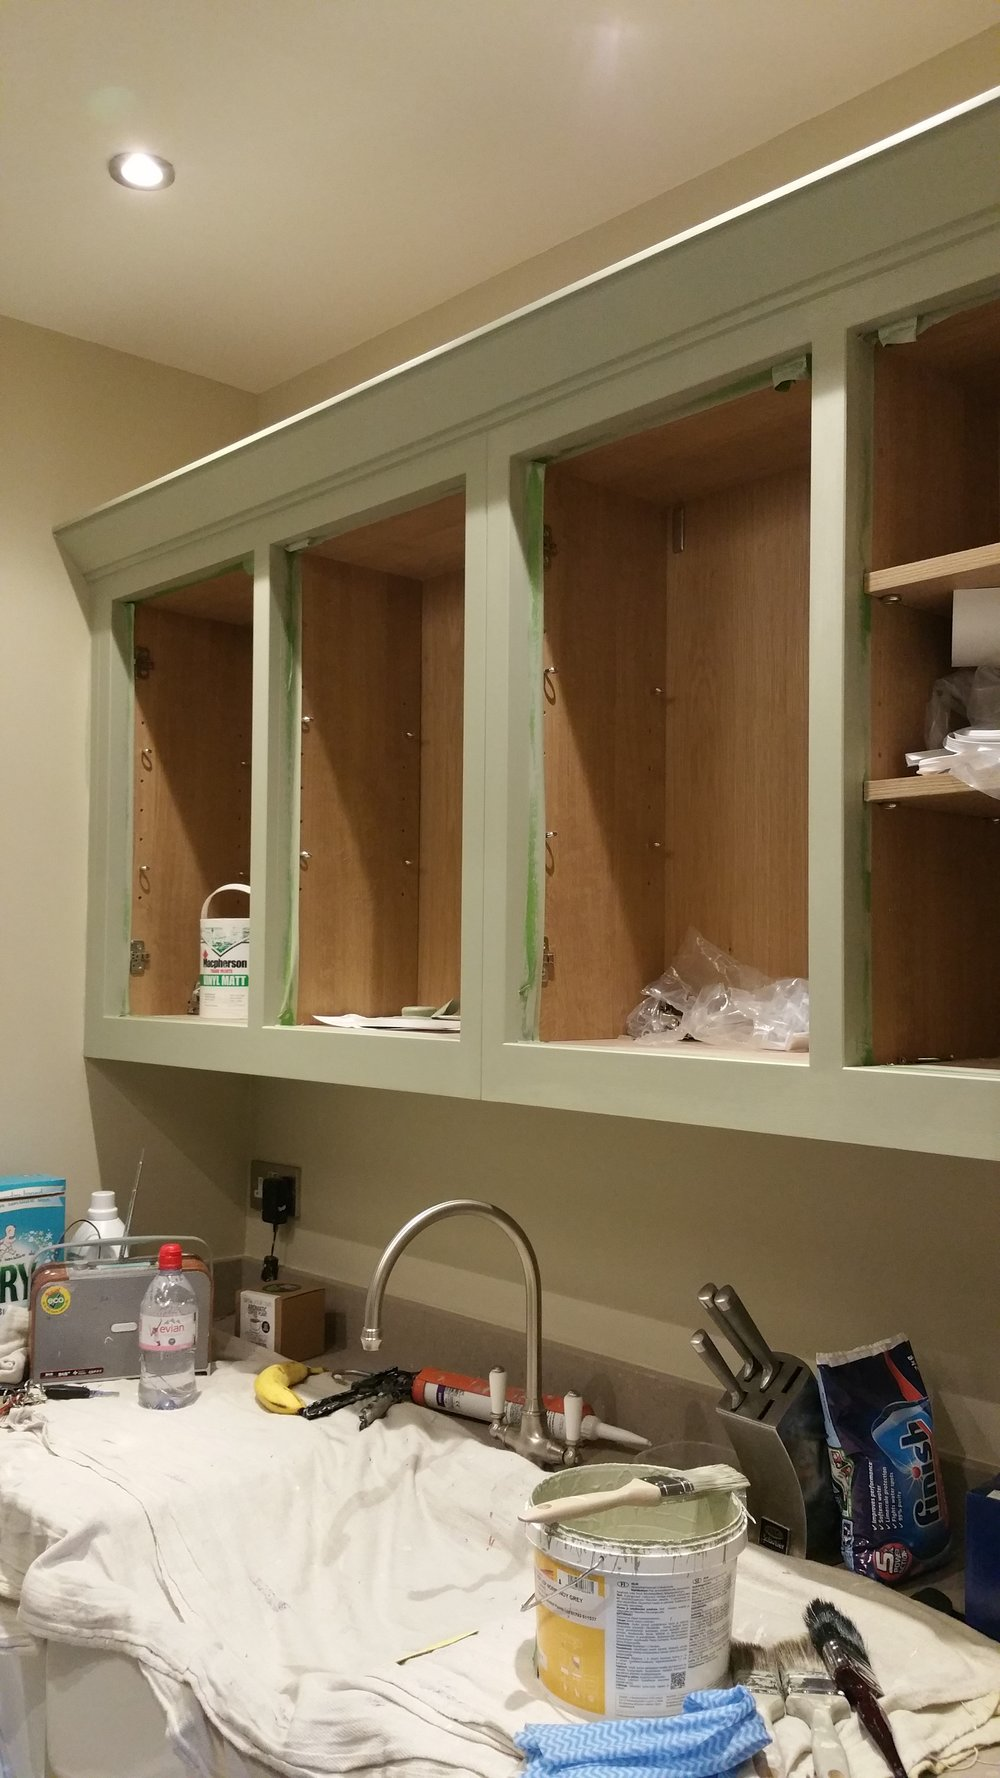 Utility room during painting